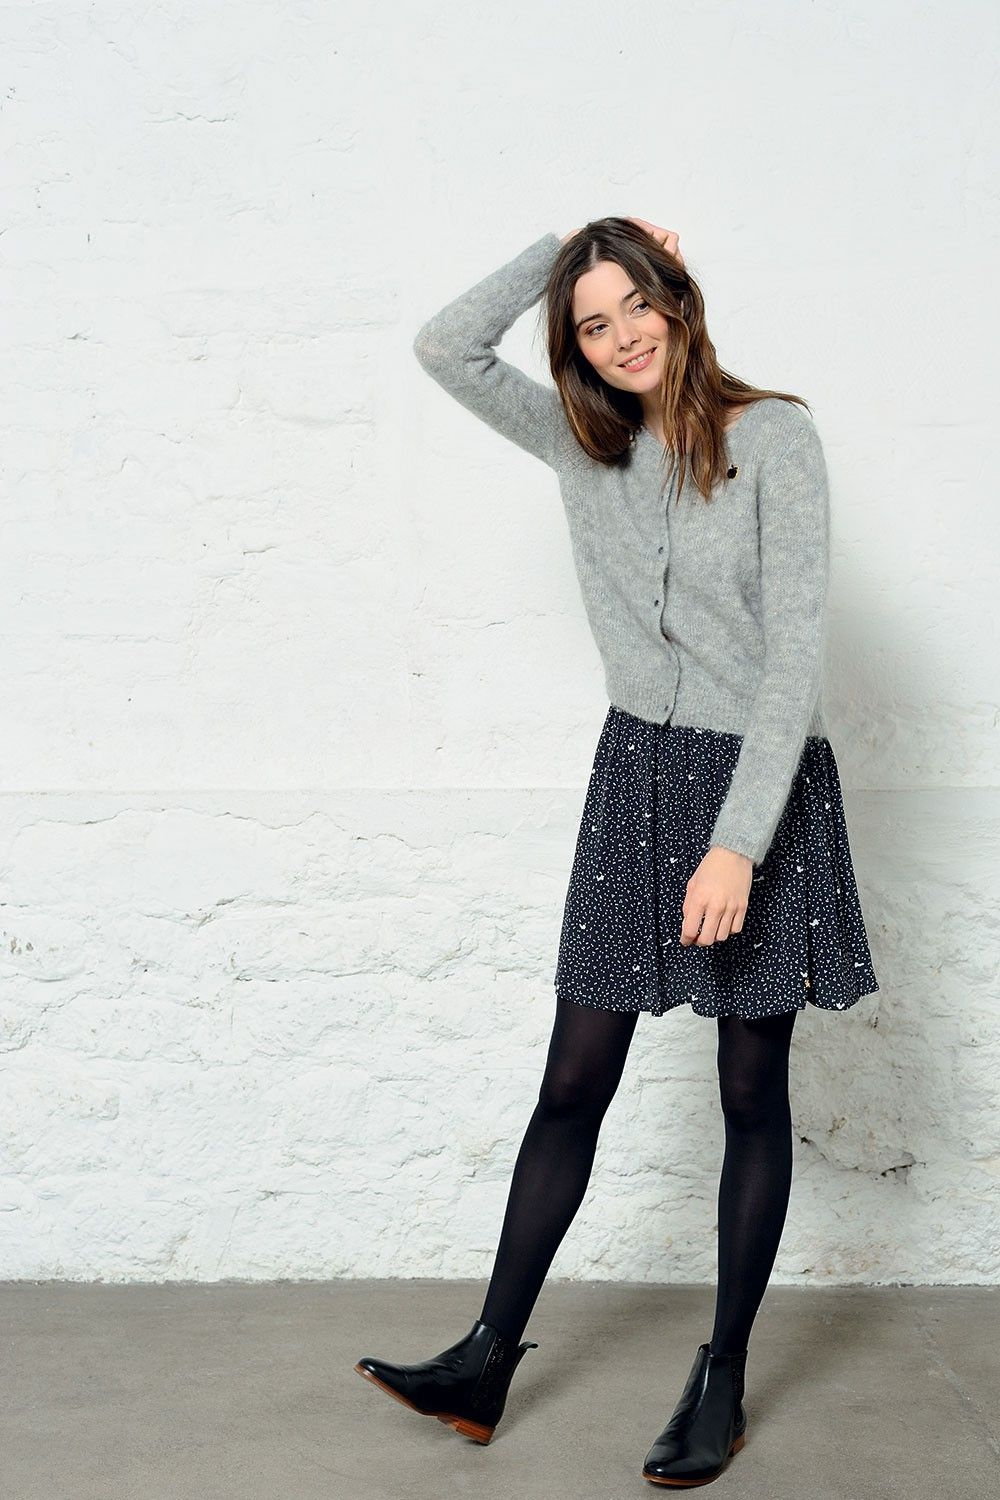 Jupe uliette ombre , jupe , des petits hauts 1 Black Tights Outfit, Tights  Outfit